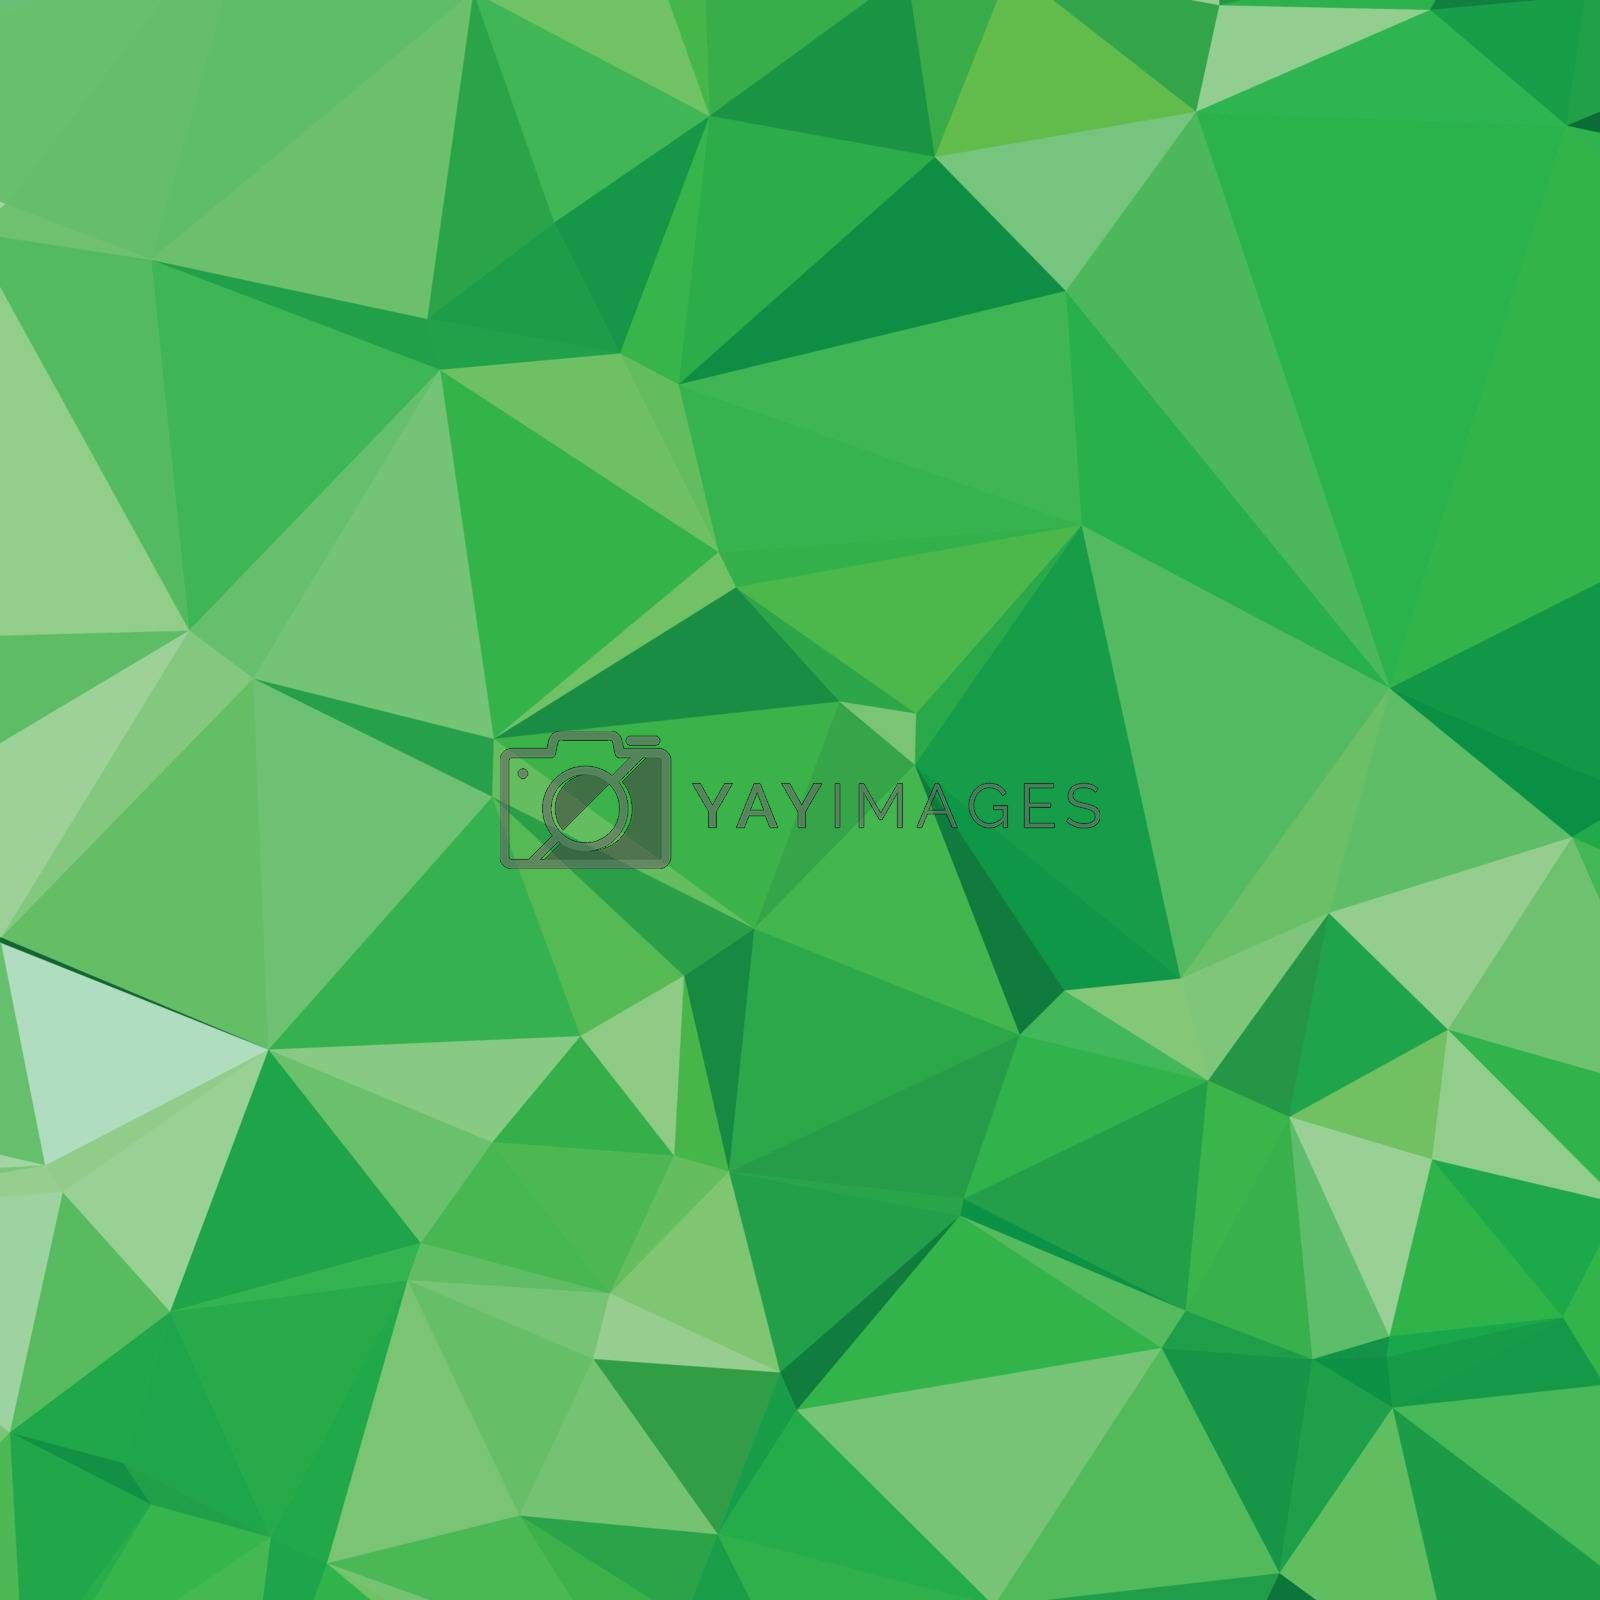 Low polygon style illustration of inchworm green abstract geometric background.